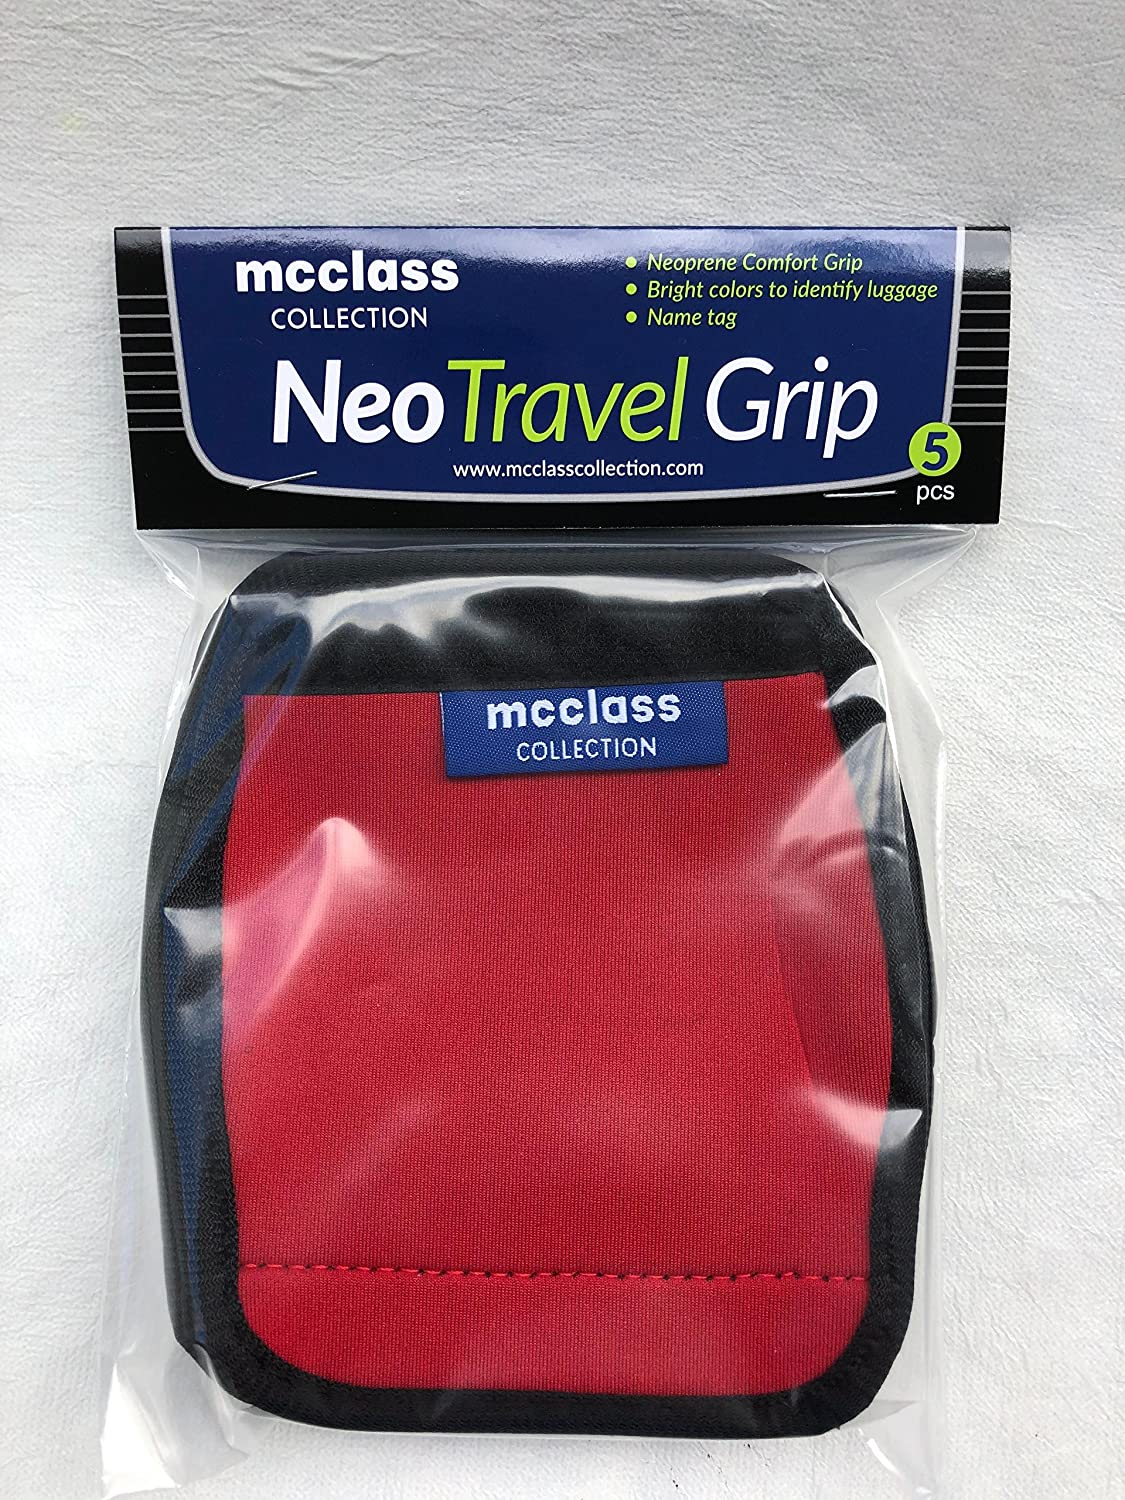 NeoTravelGrip Travel Luggage Handle Wrap Carry on Suitcase Name Tag